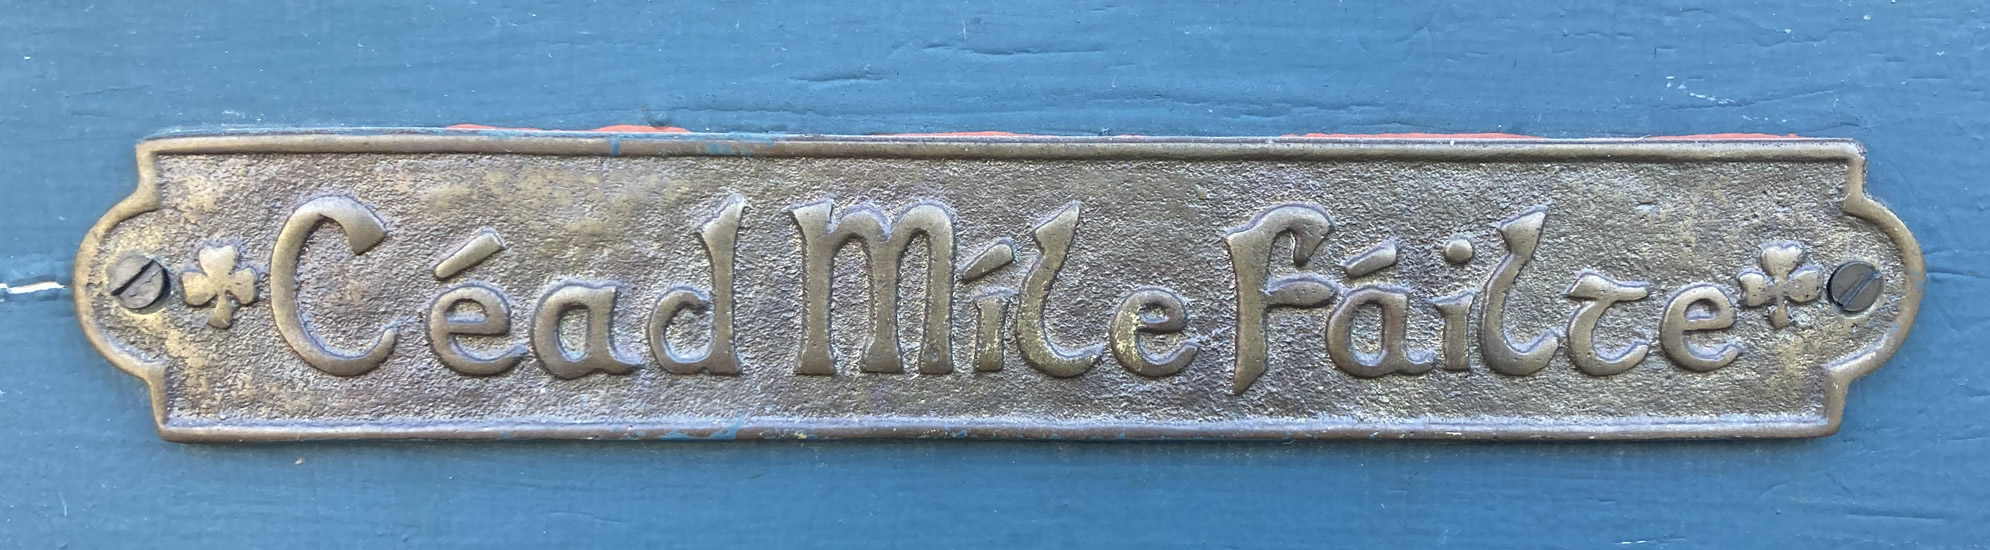 Plaque IMG-0368a